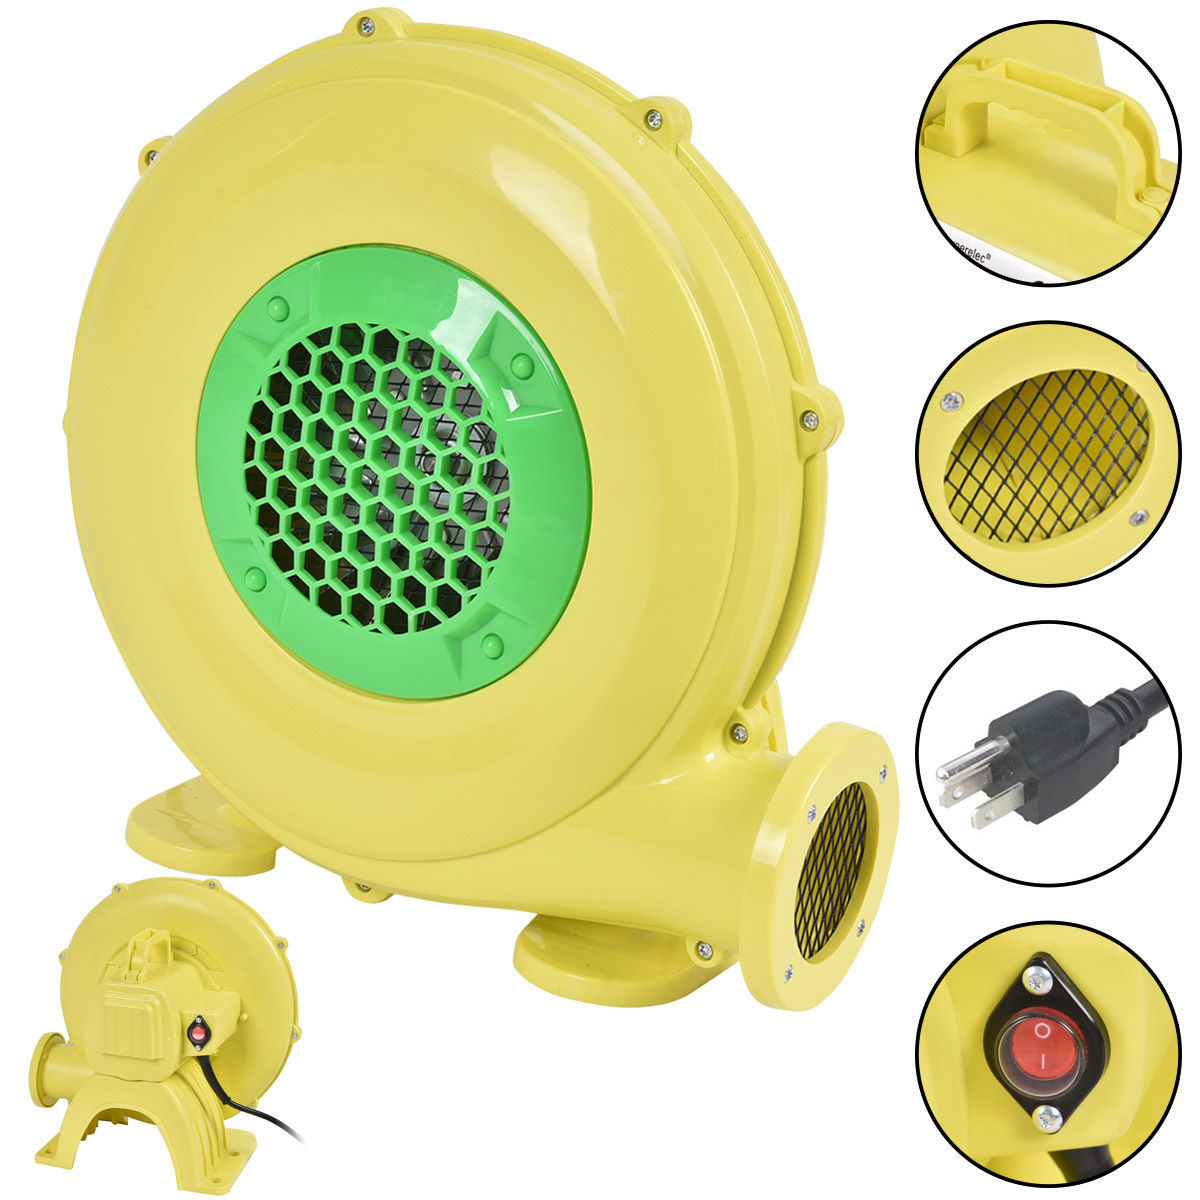 Costway Air Blower Pump Fan 480 Watt 0.64HP For Inflatable Bounce House Bouncy Castle